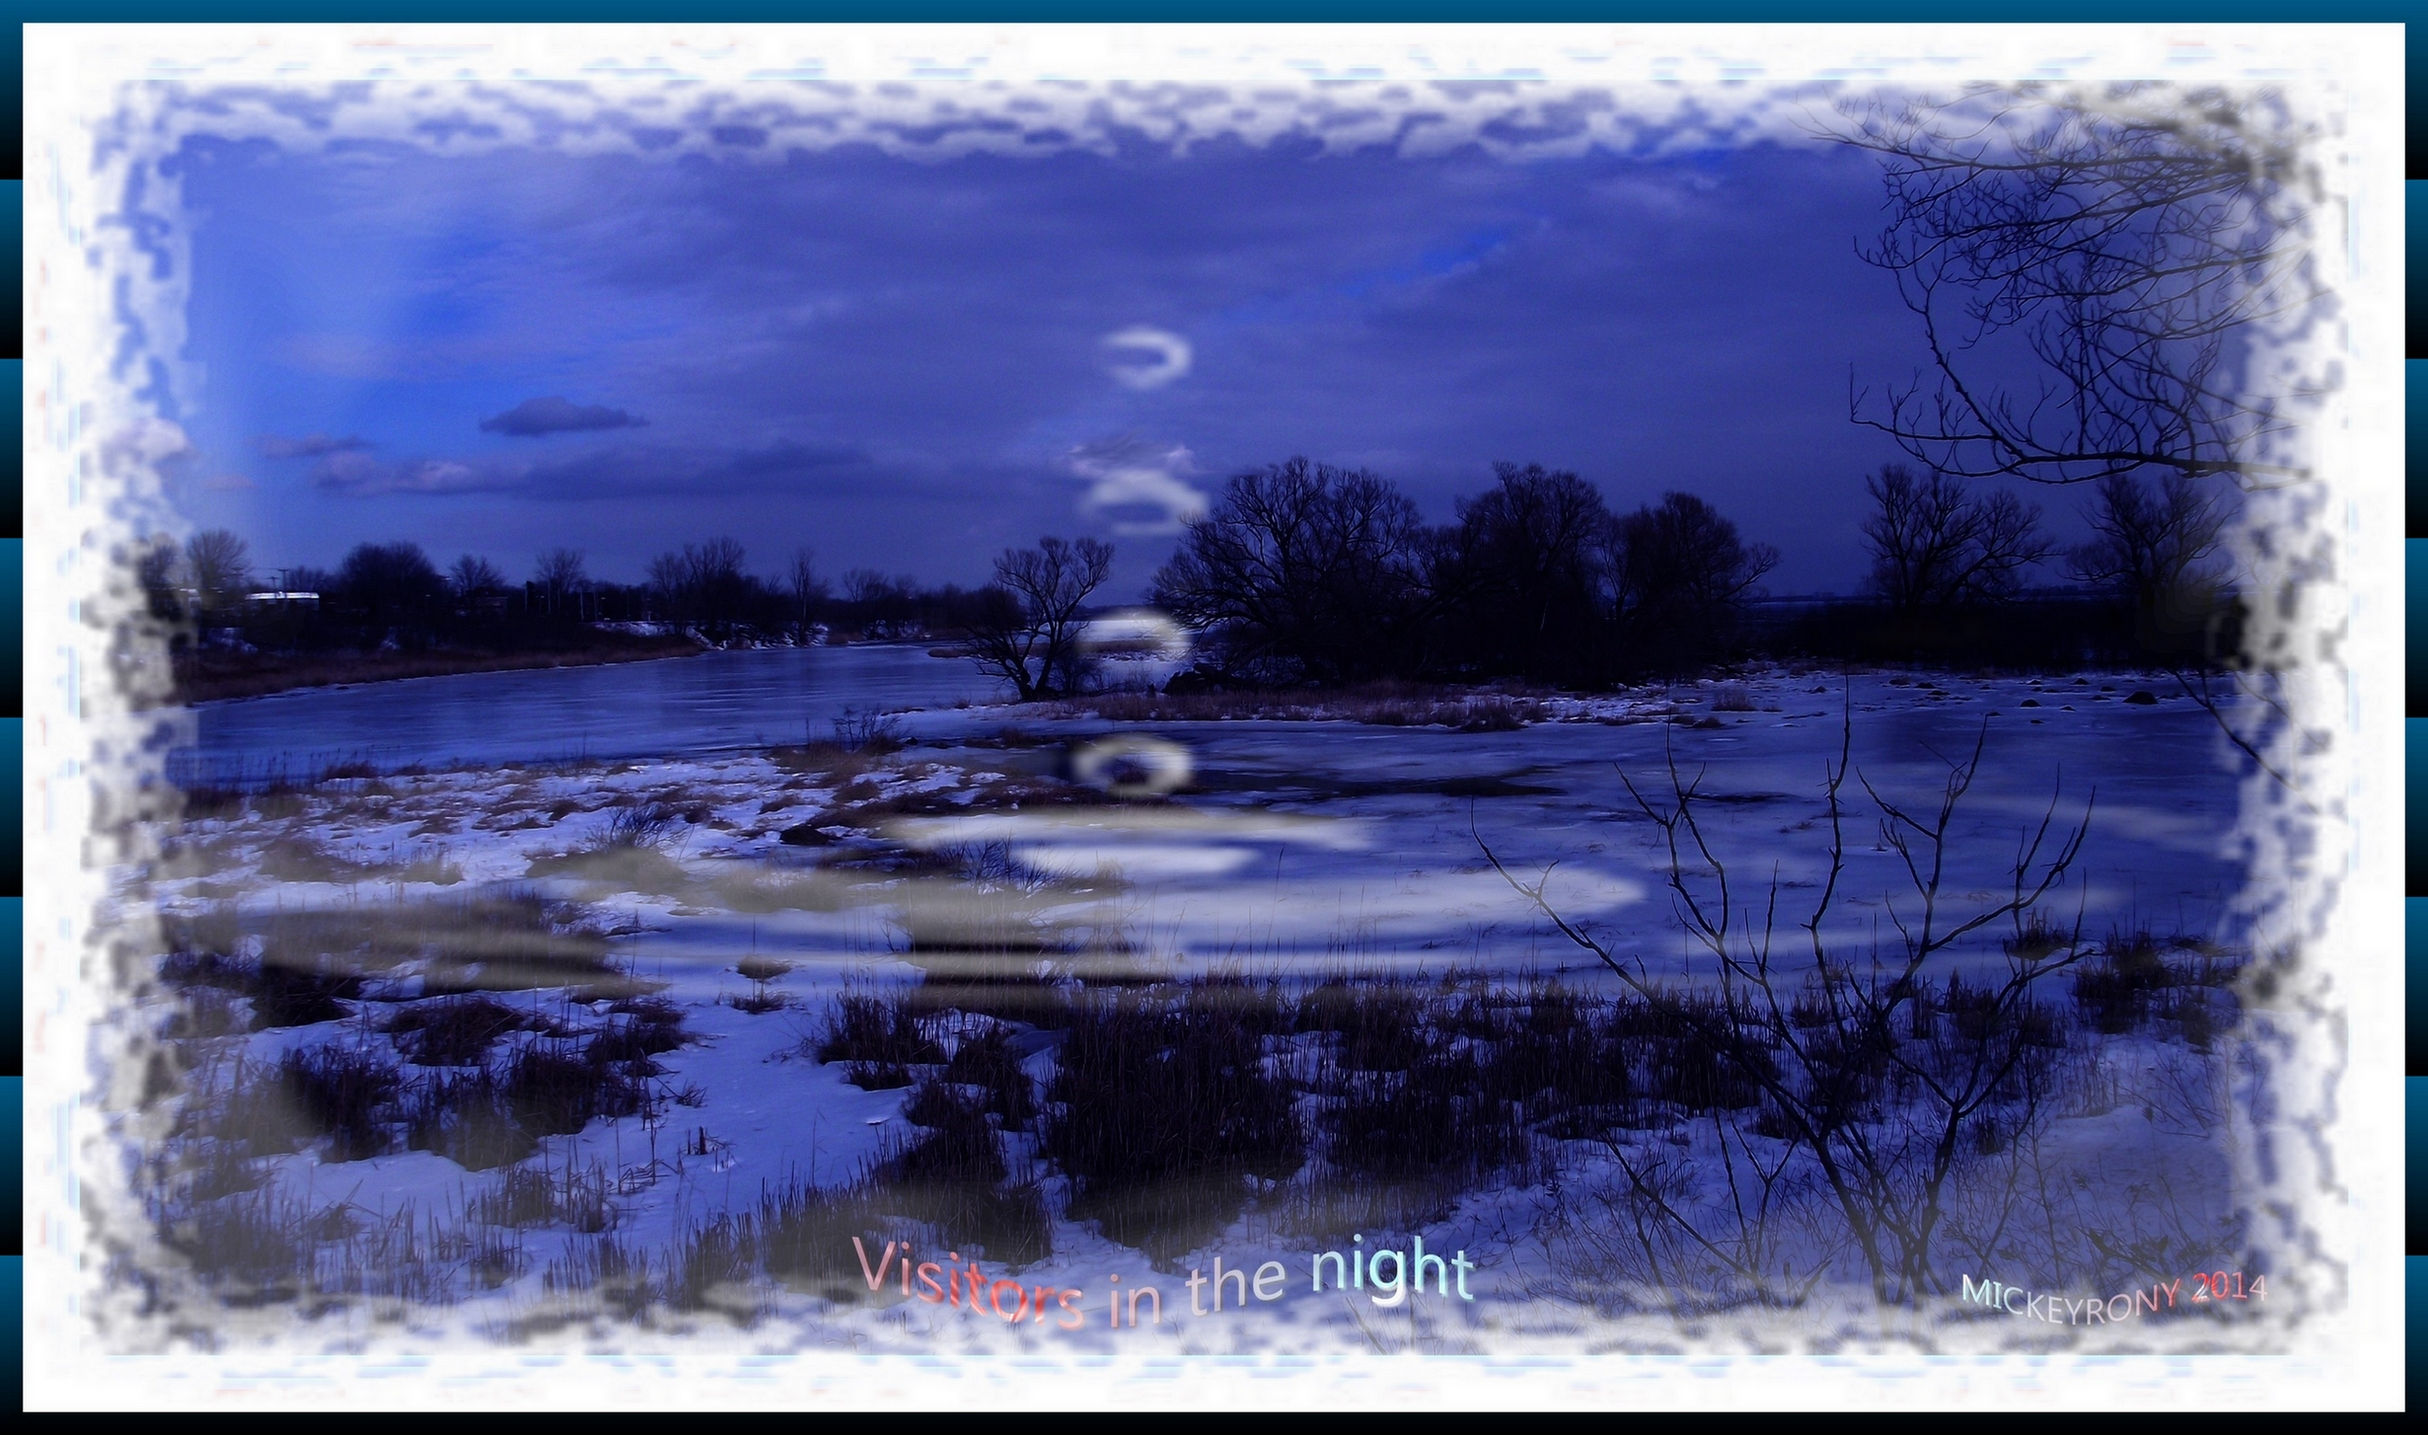 Visitors in the night